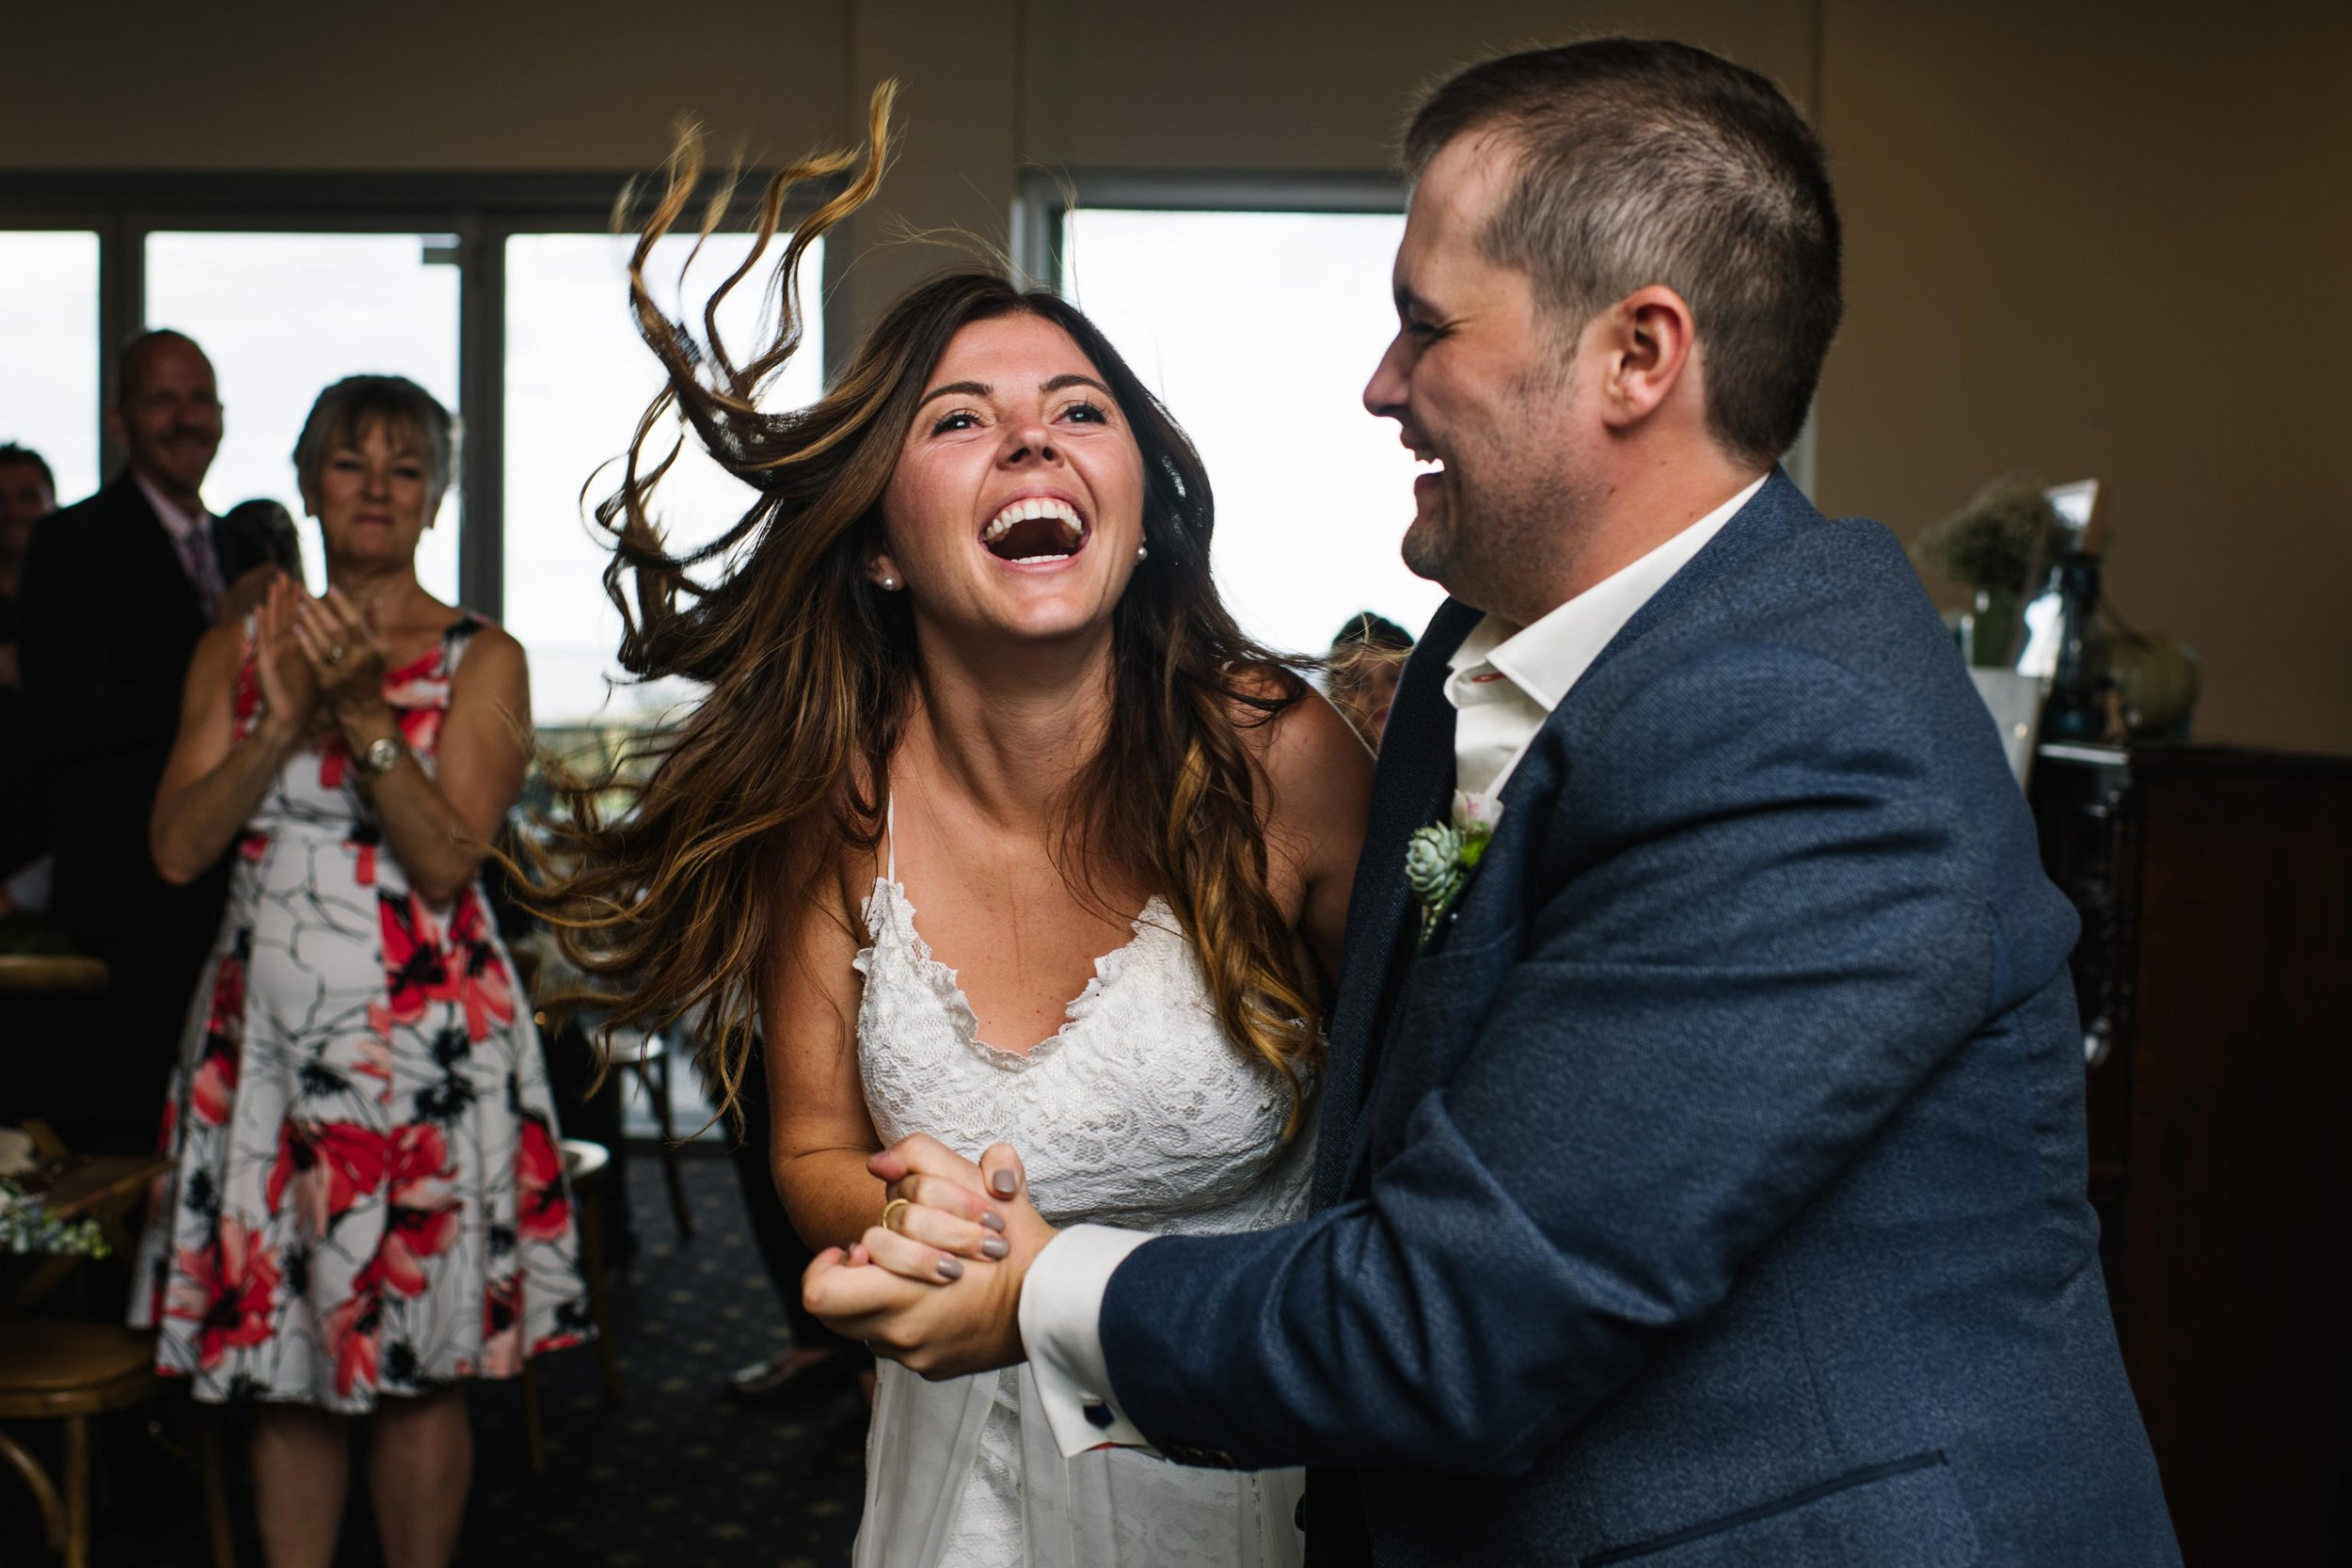 Bride laughing during entrance to wedding reception